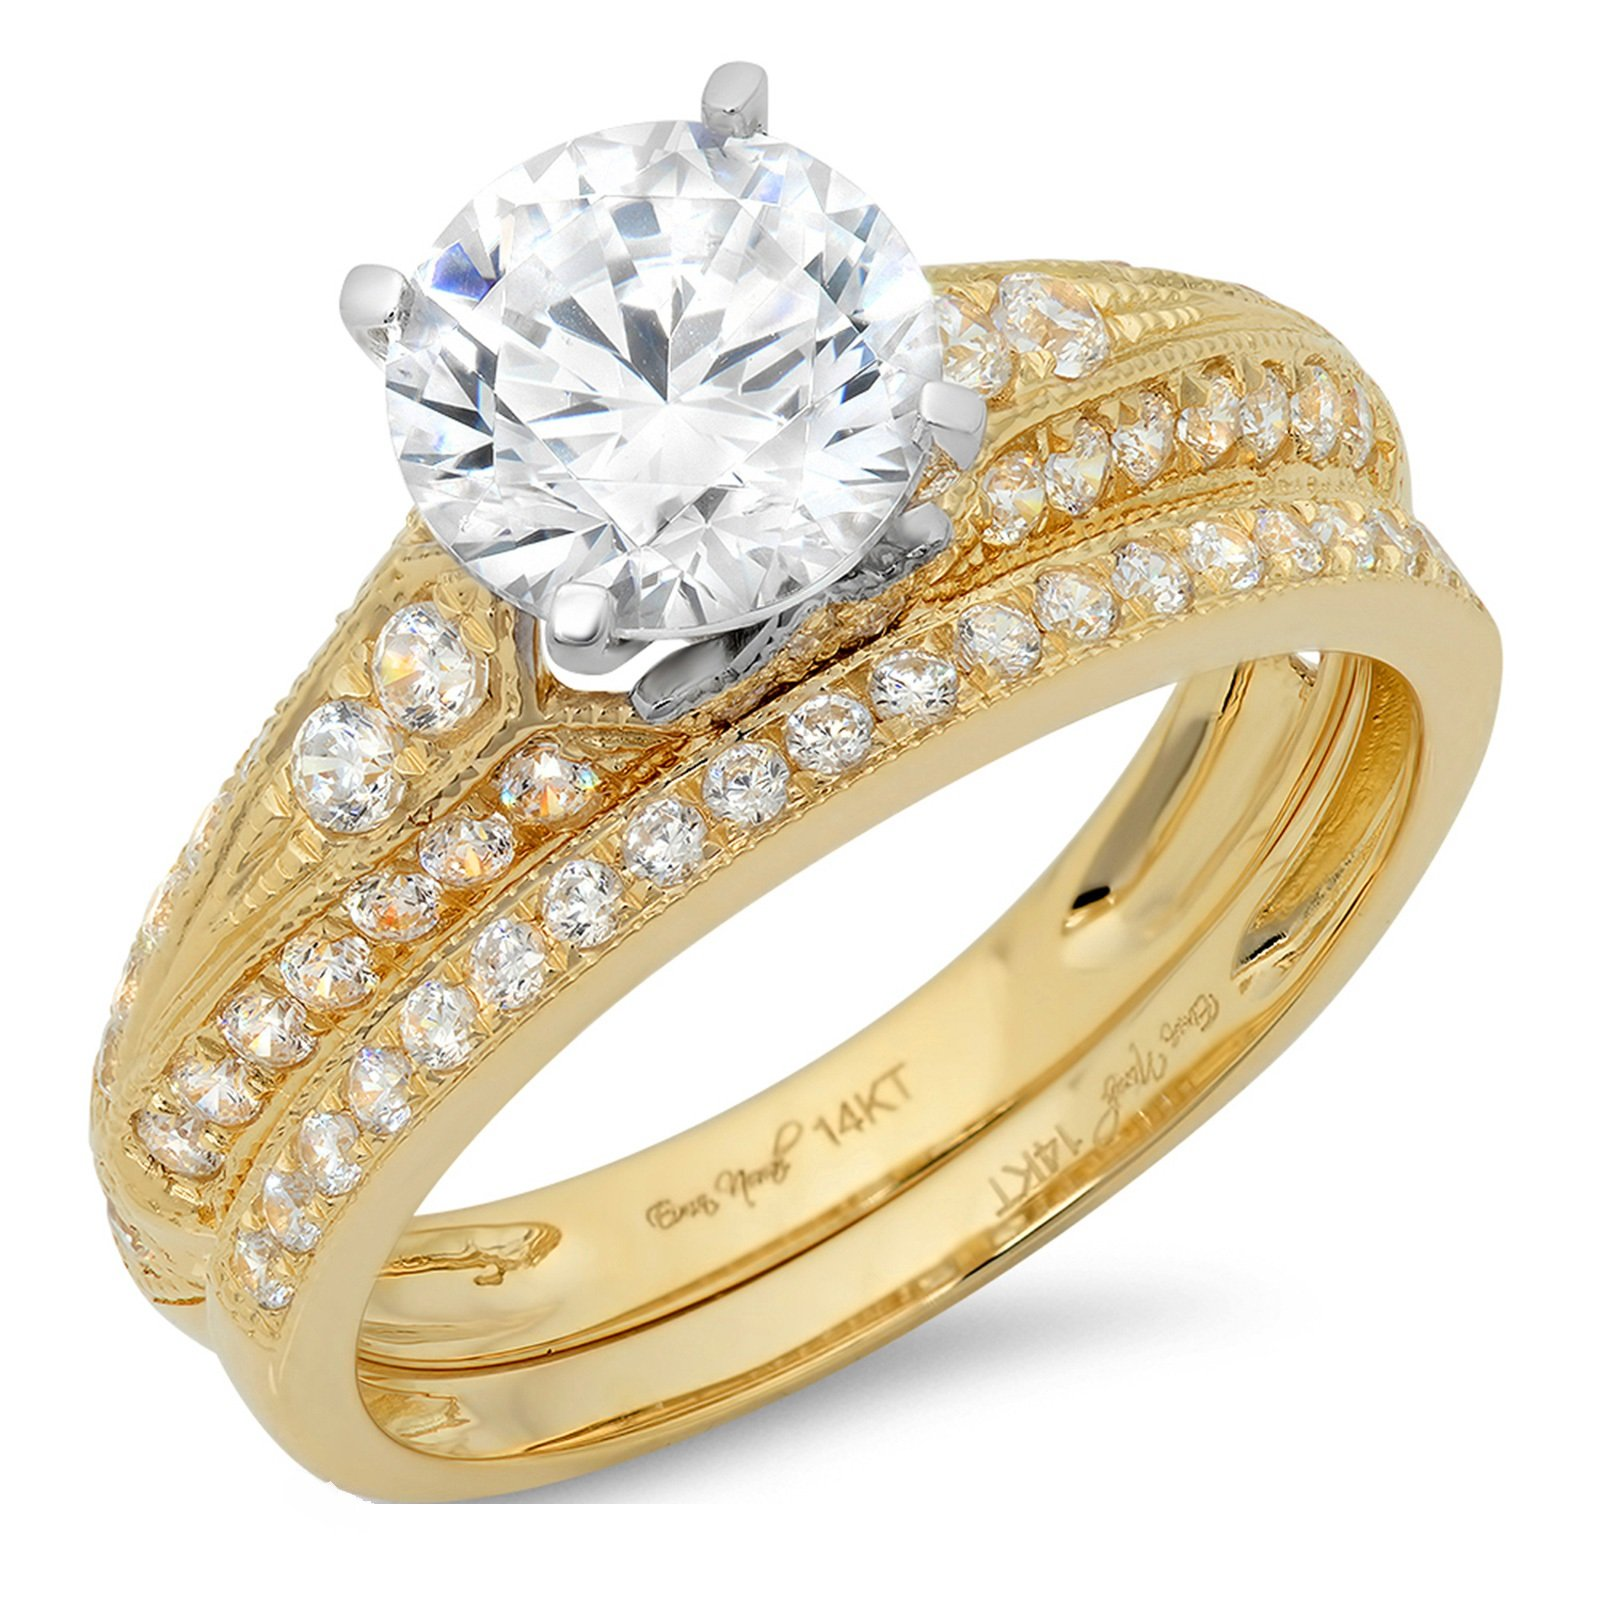 2.3 Ct Round Cut Pave Halo Bridal Engagement Wedding Anniversary Ring Band Set 14K Yellow White Gold, Size 8.75, Clara Pucci